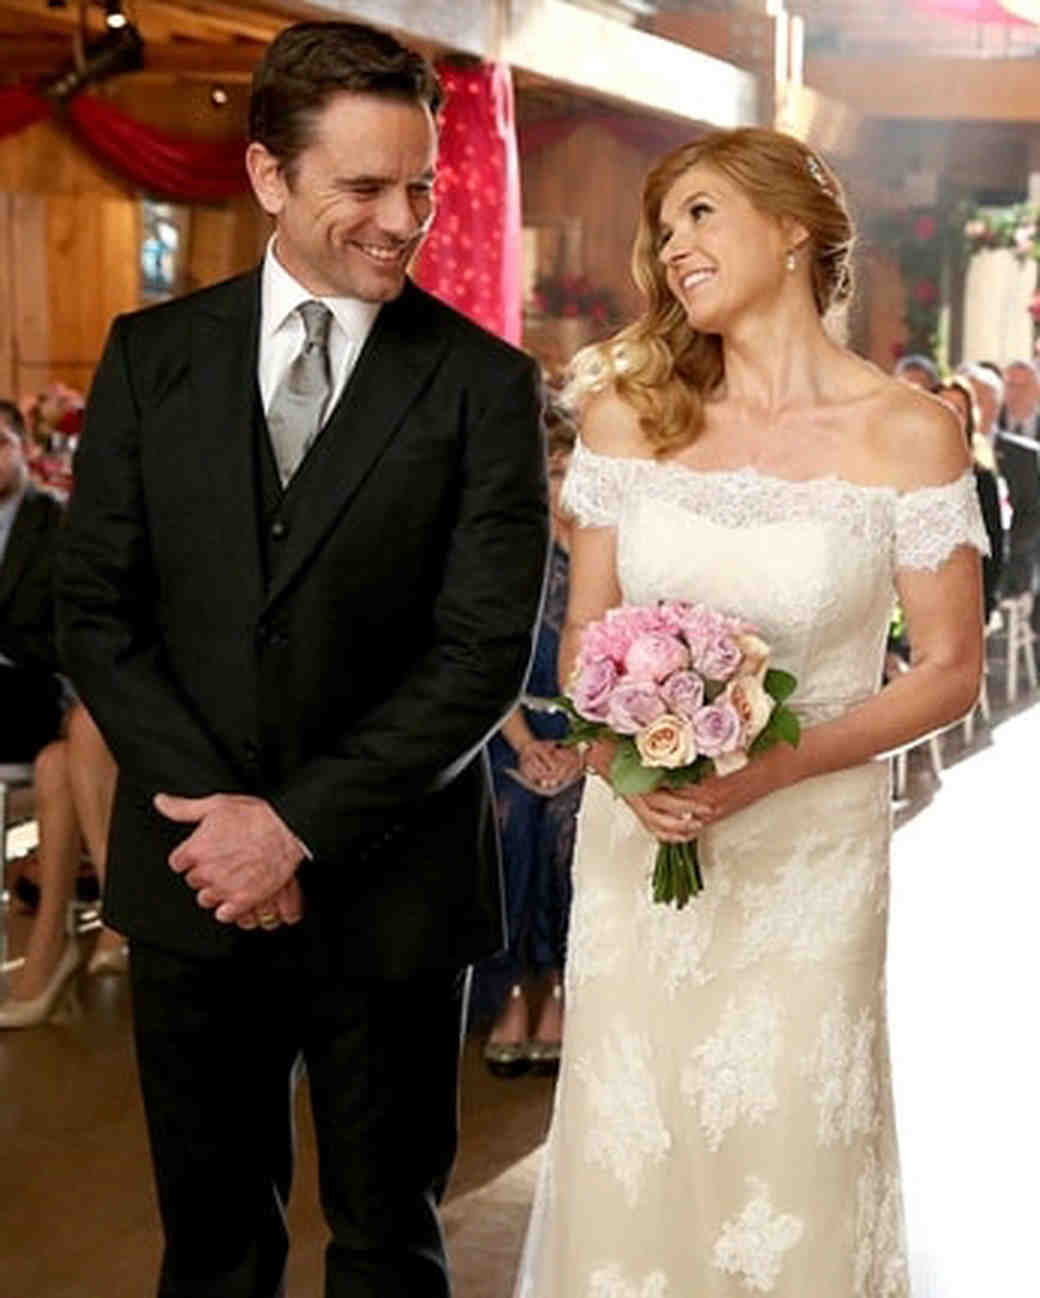 tv-wedding-dresses-nashville-rayna-deacon-connie-britton-0316.jpg